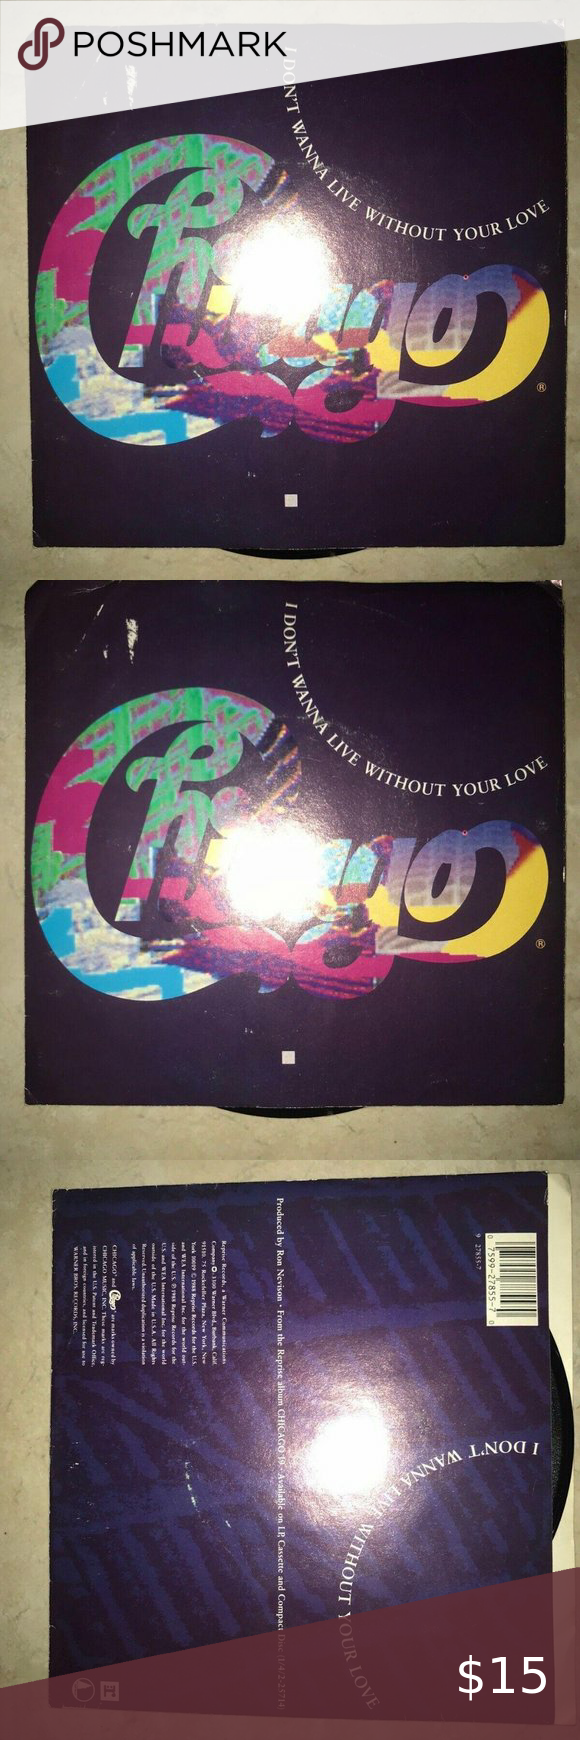 Chicago Vinyl Record 45 I Dont Wanna Live Without In 2020 Vinyl Records Vinyl Records